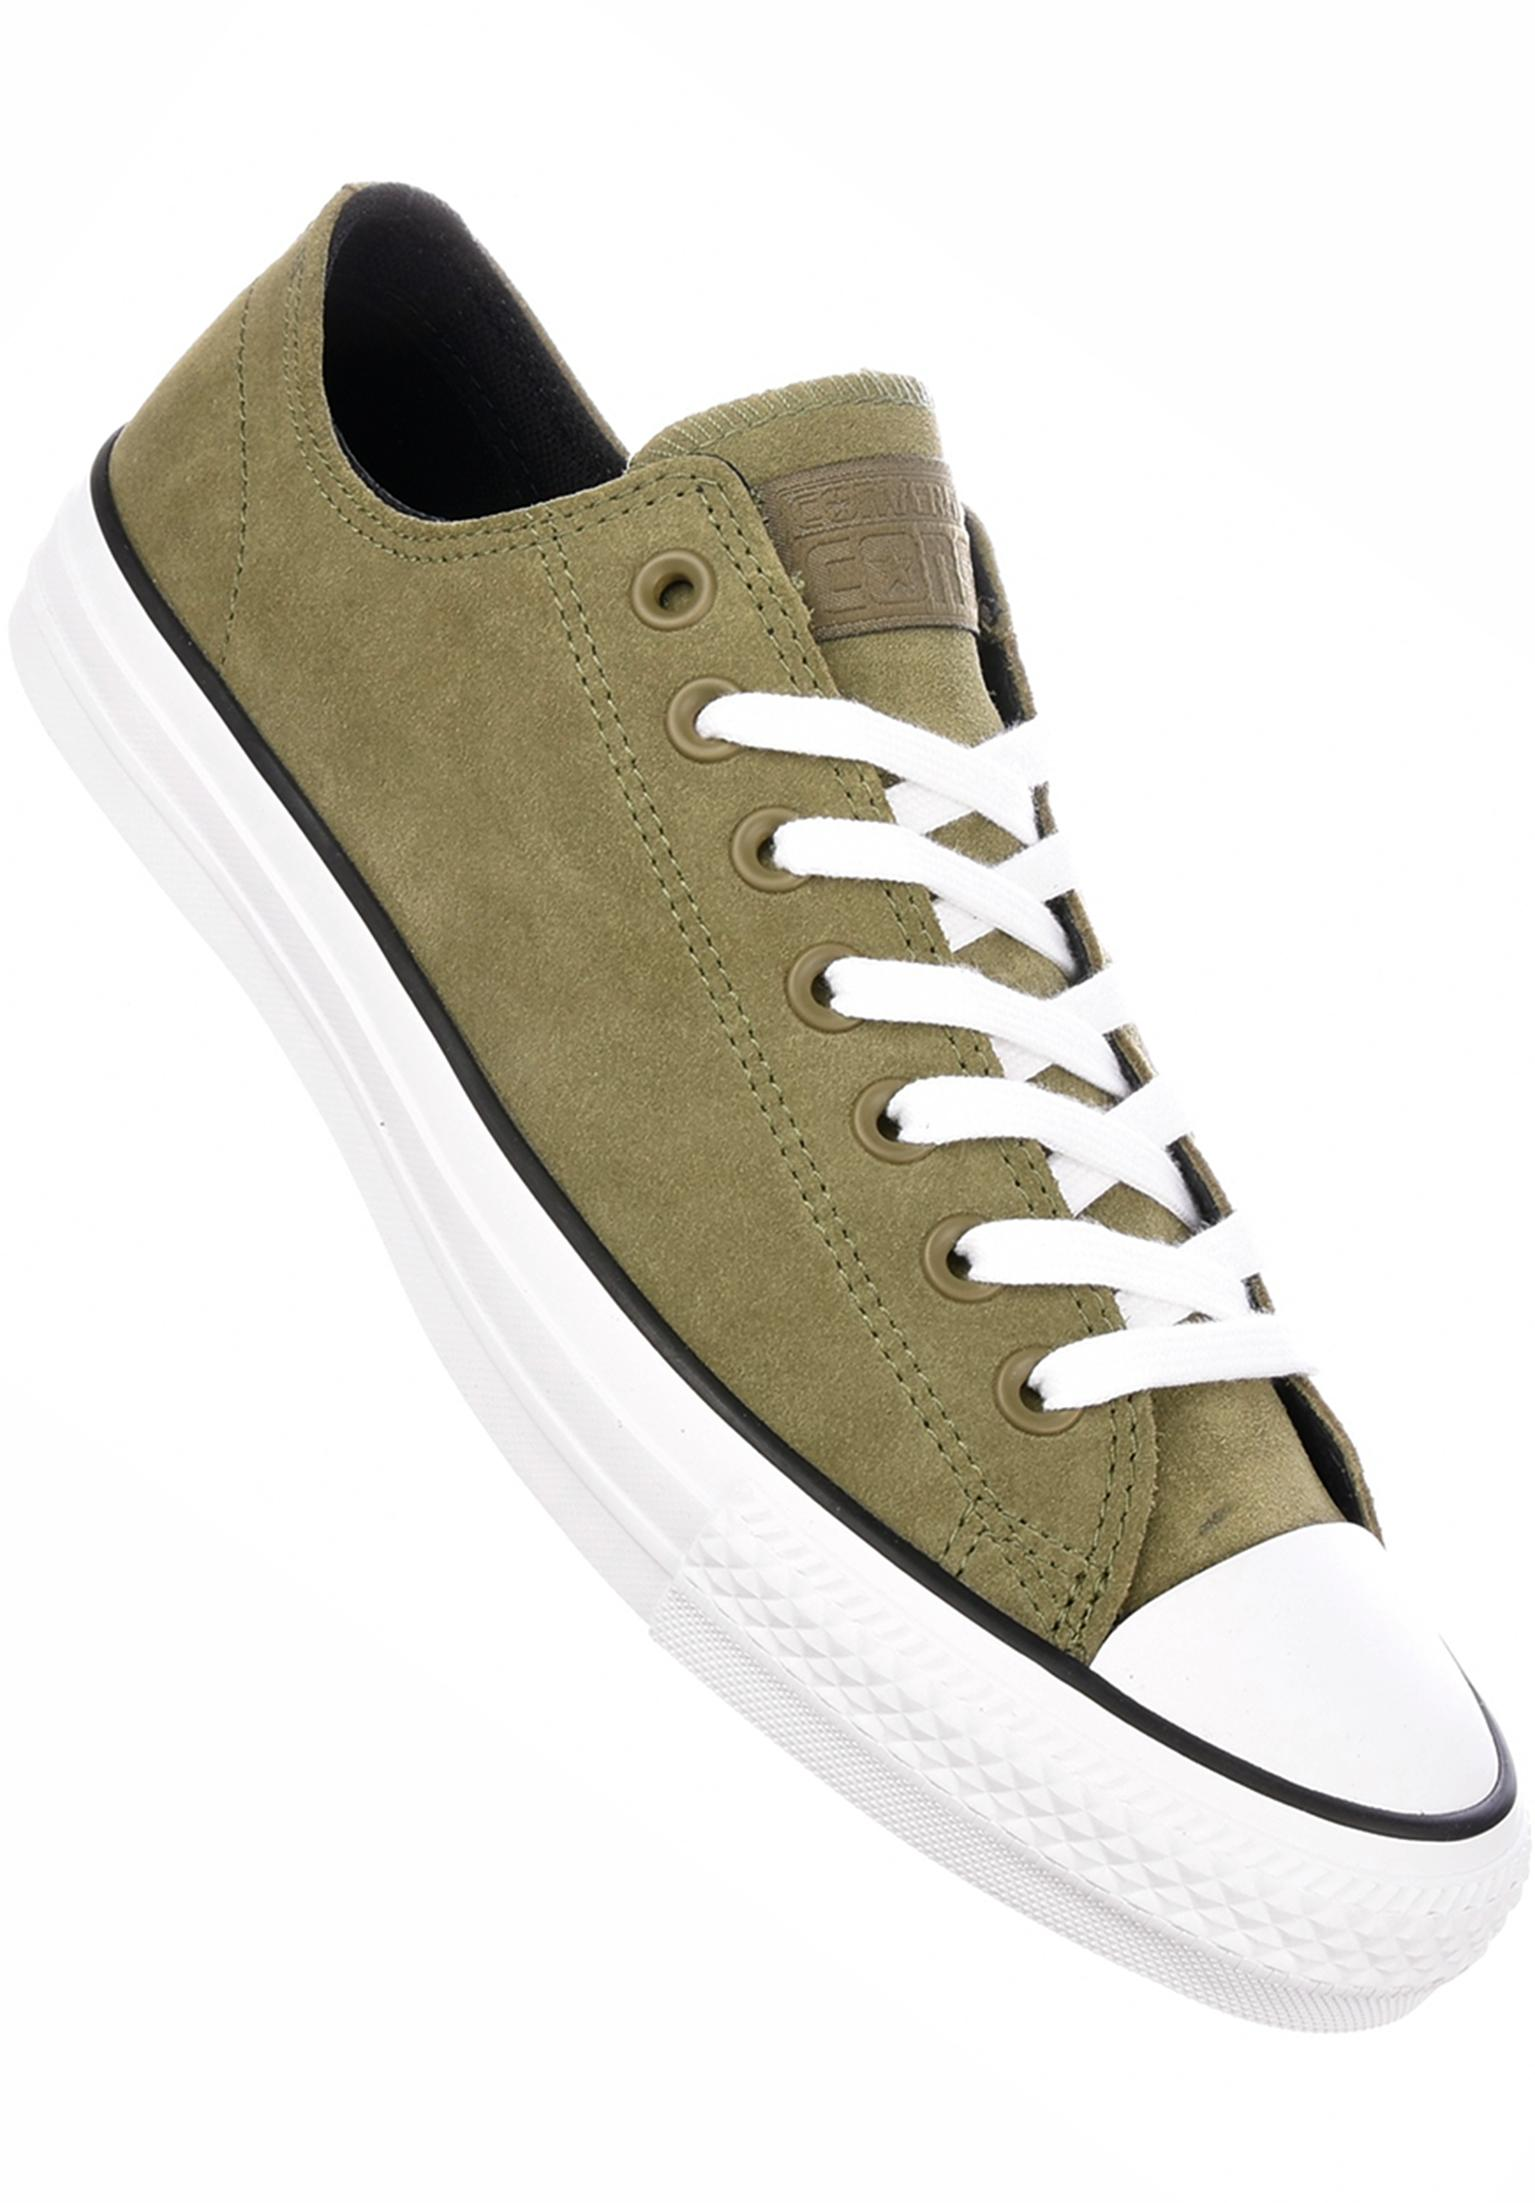 cb33f2292a0946 CTAS Pro Suede Ox Converse CONS All Shoes in mediumolive for Men